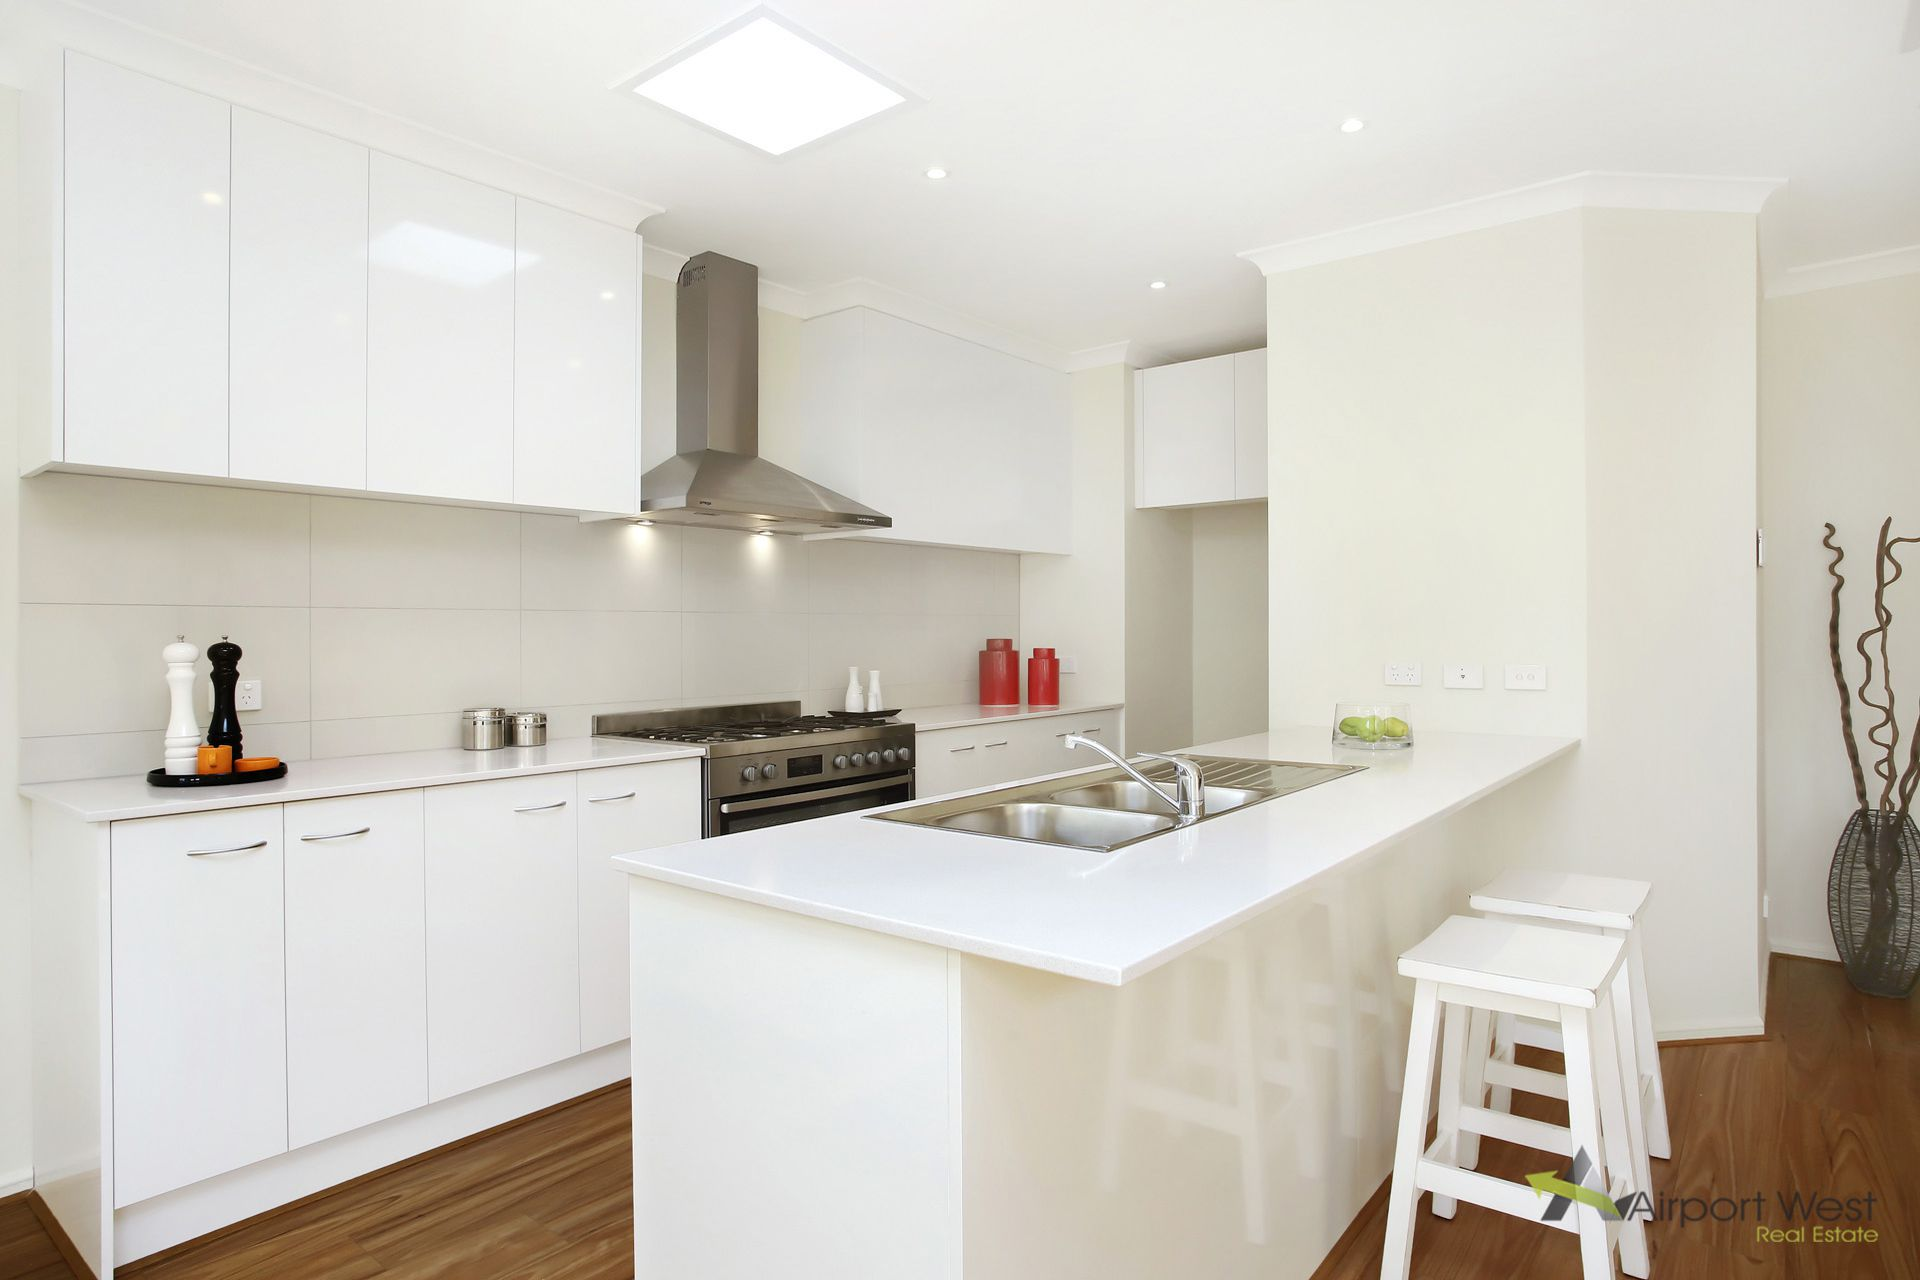 1 / 124 Marshall Road, Airport West